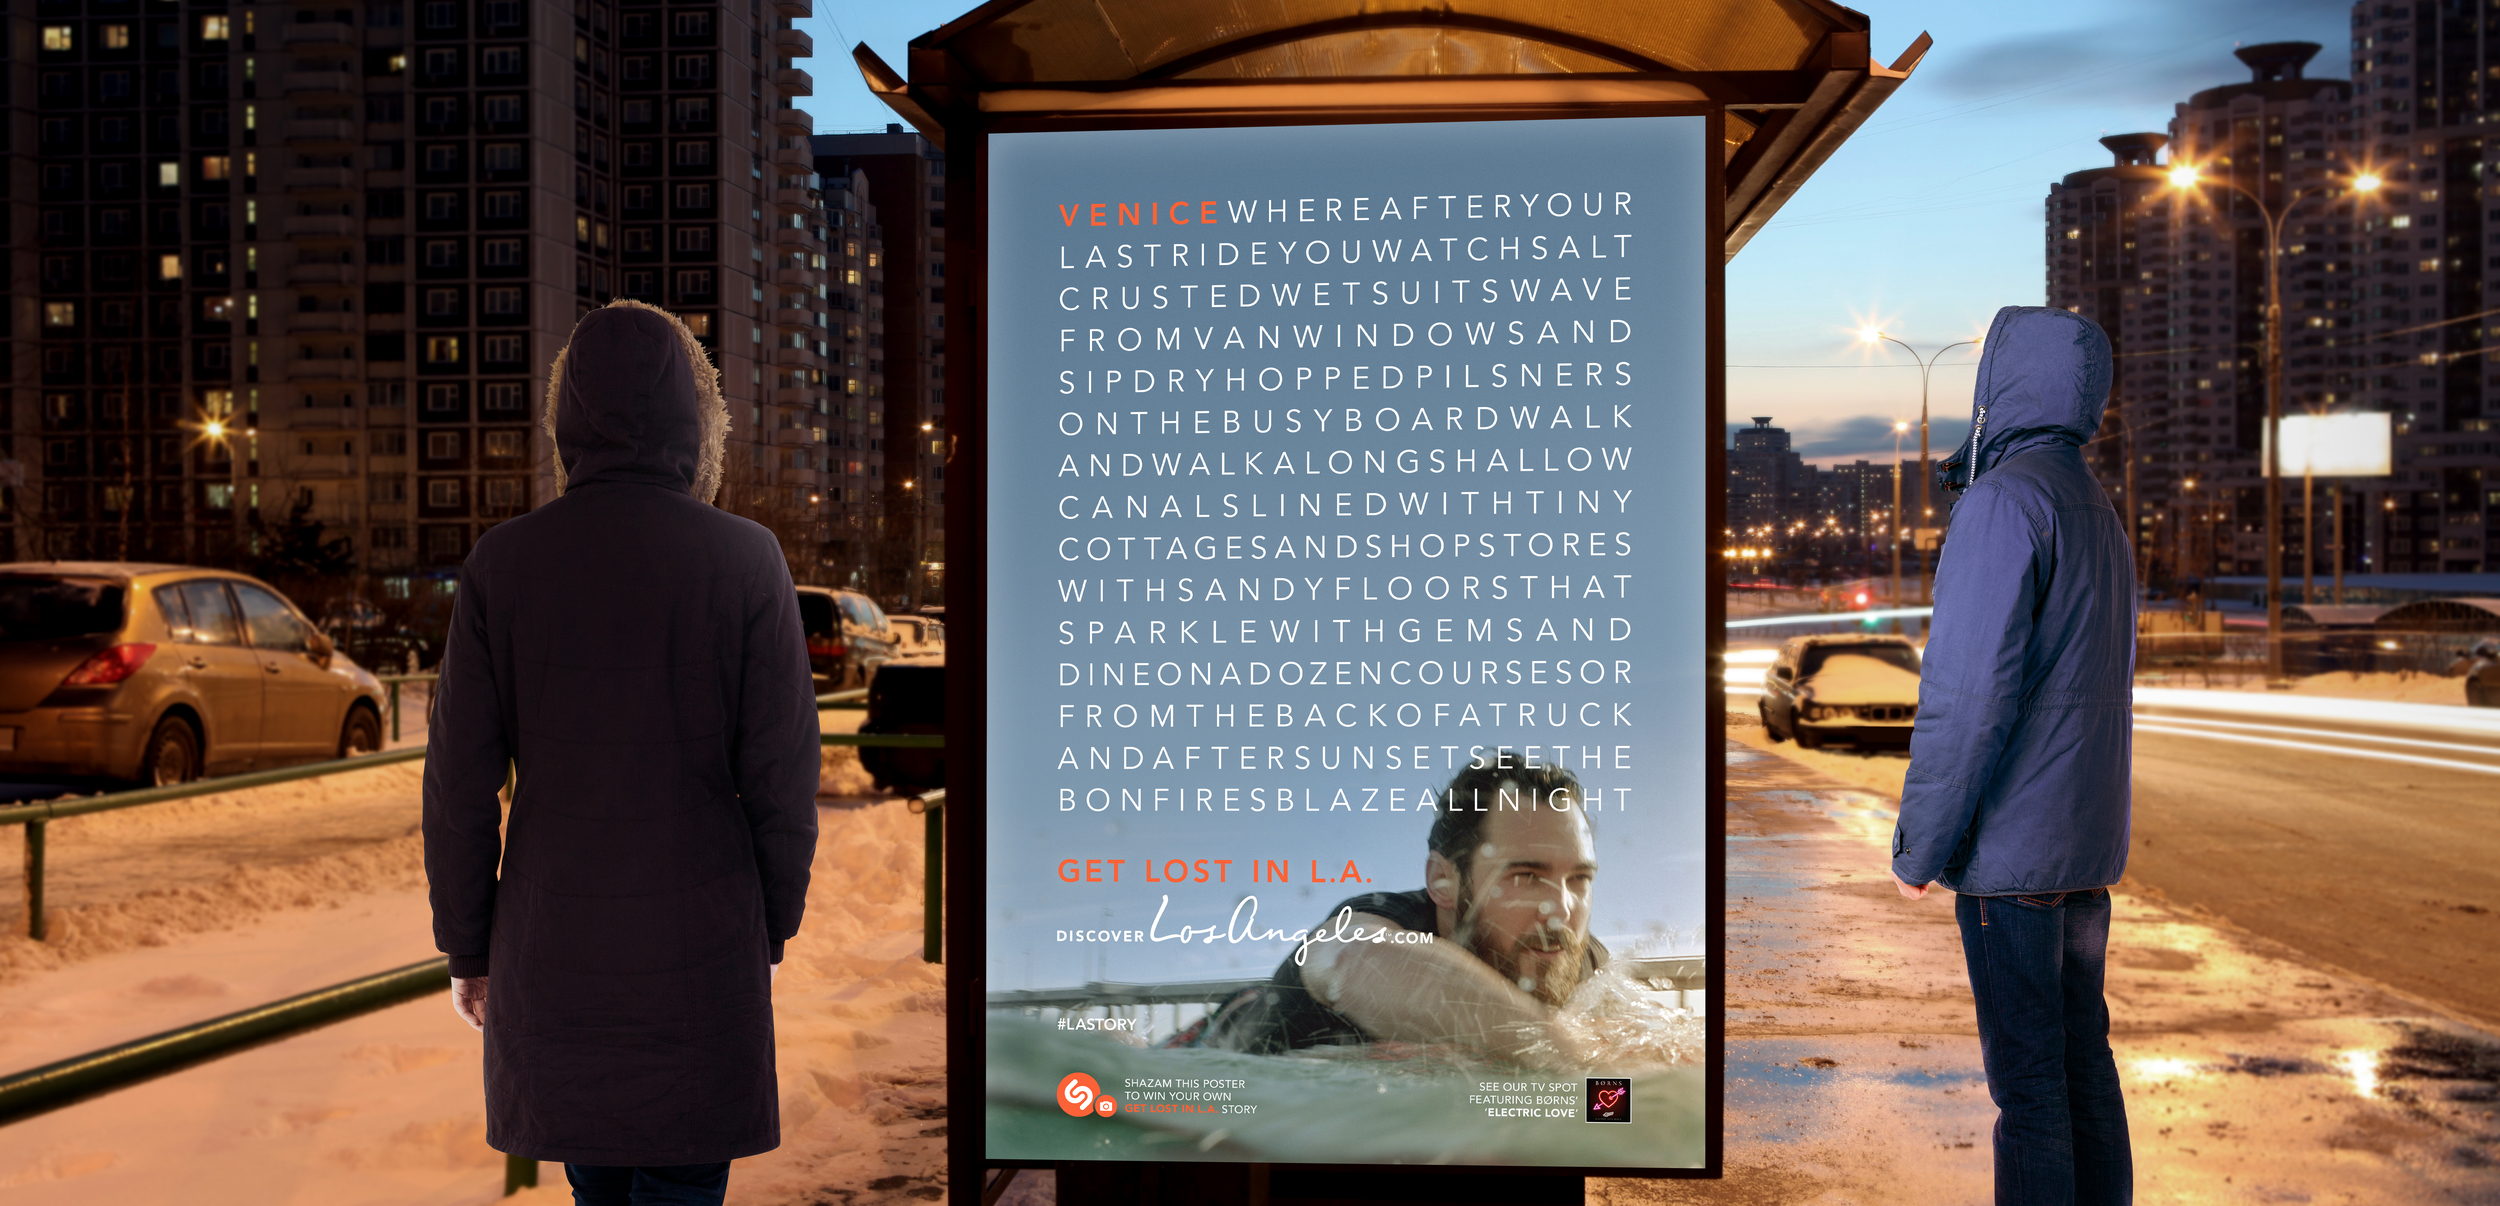 Get Lost in L.A. ad campaign O.O.H. bus shelter ad for L.A. Tourism & Convention Board by Tom Morhous and Remo+Oob, Ltd.